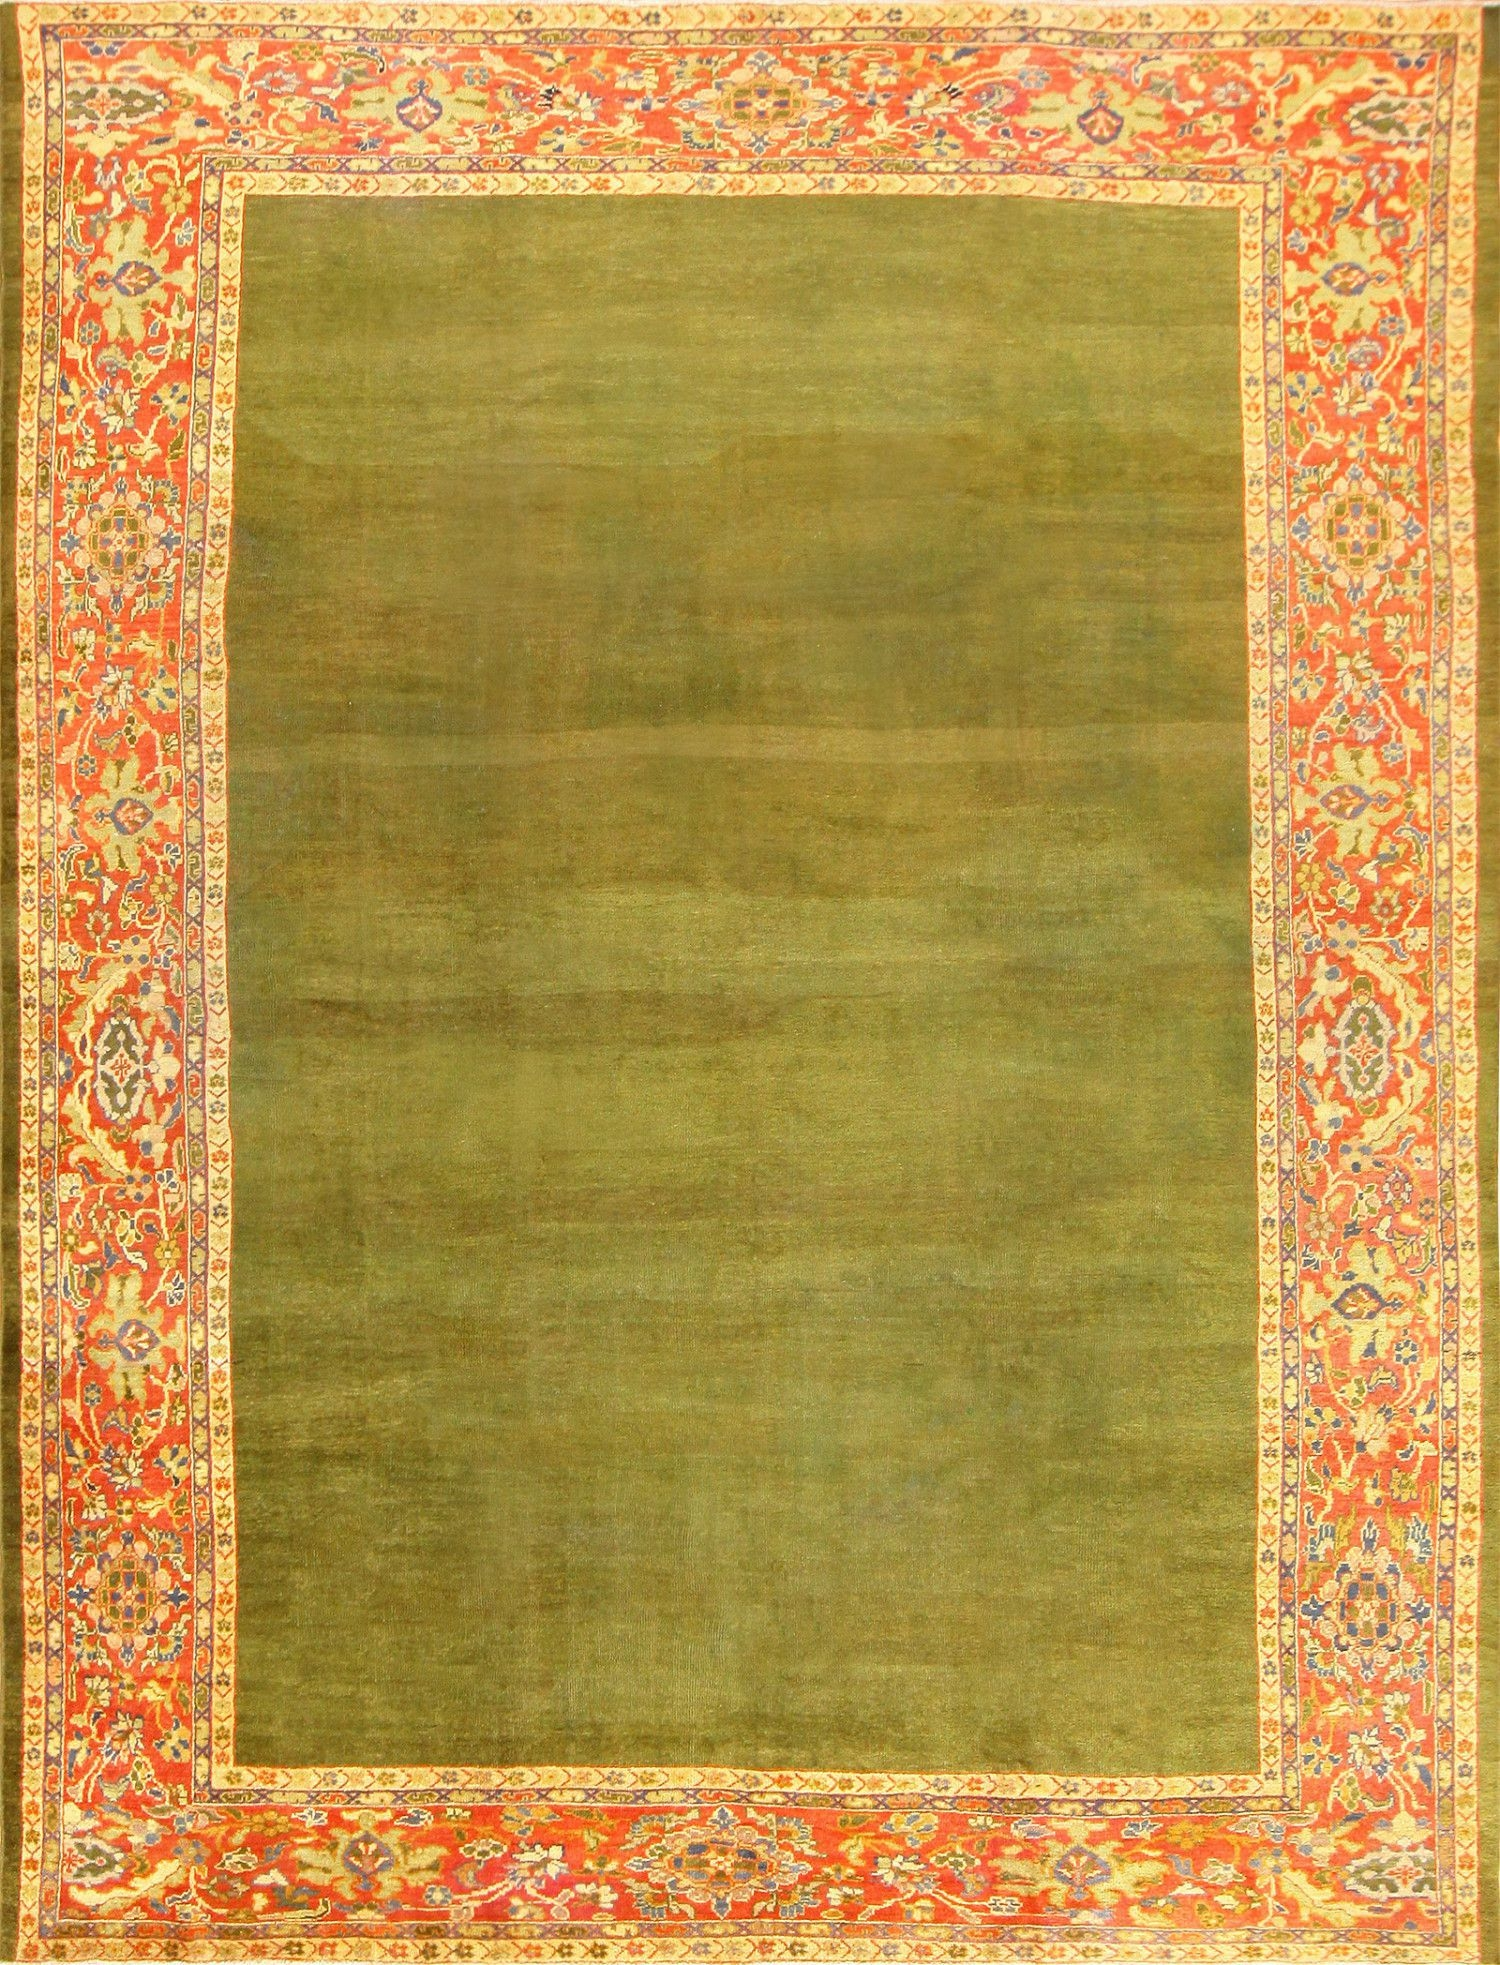 Festive Red And Green Antique Rugs For Your Home Holiday Decor With Regard To Olive Green Rugs (Image 1 of 15)